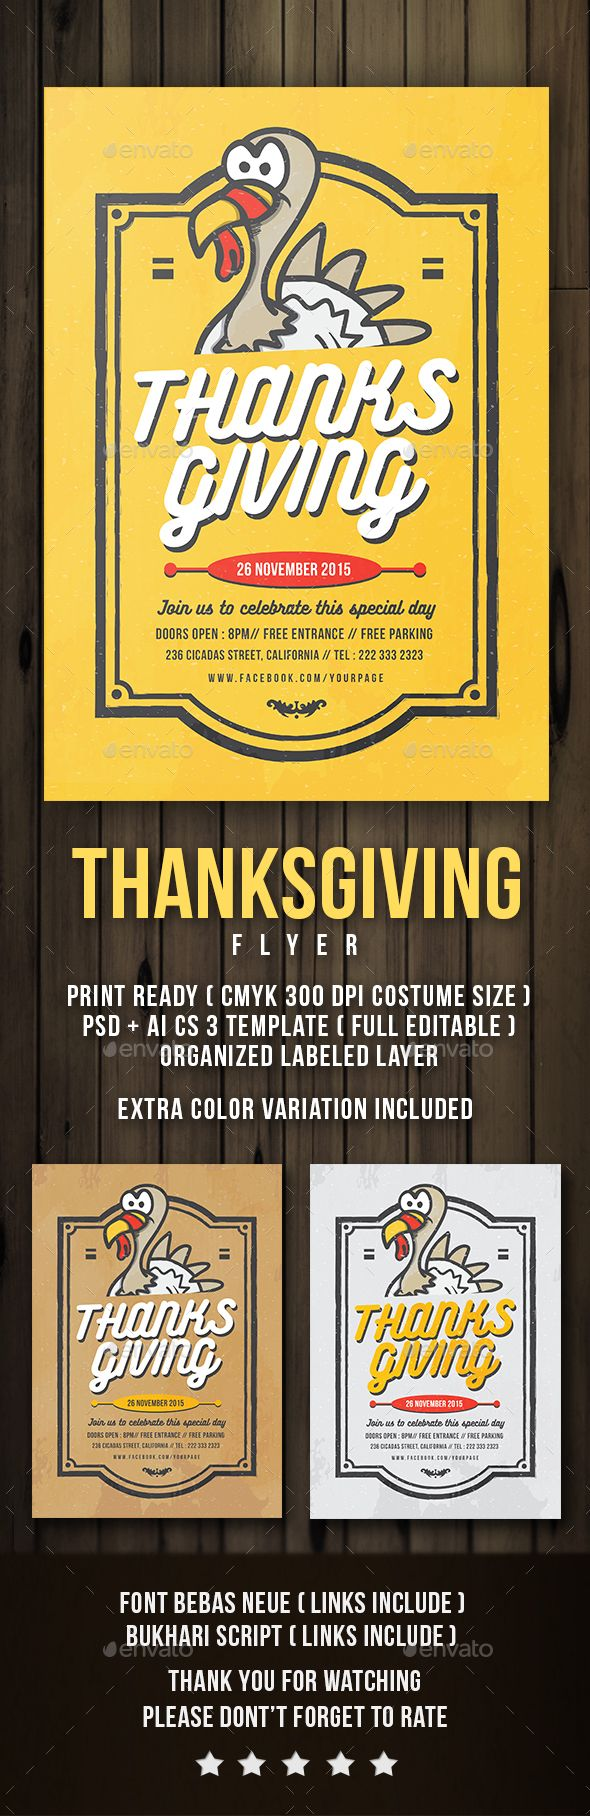 flyer thanksgiving flyers flyer template and thanksgiving. Black Bedroom Furniture Sets. Home Design Ideas